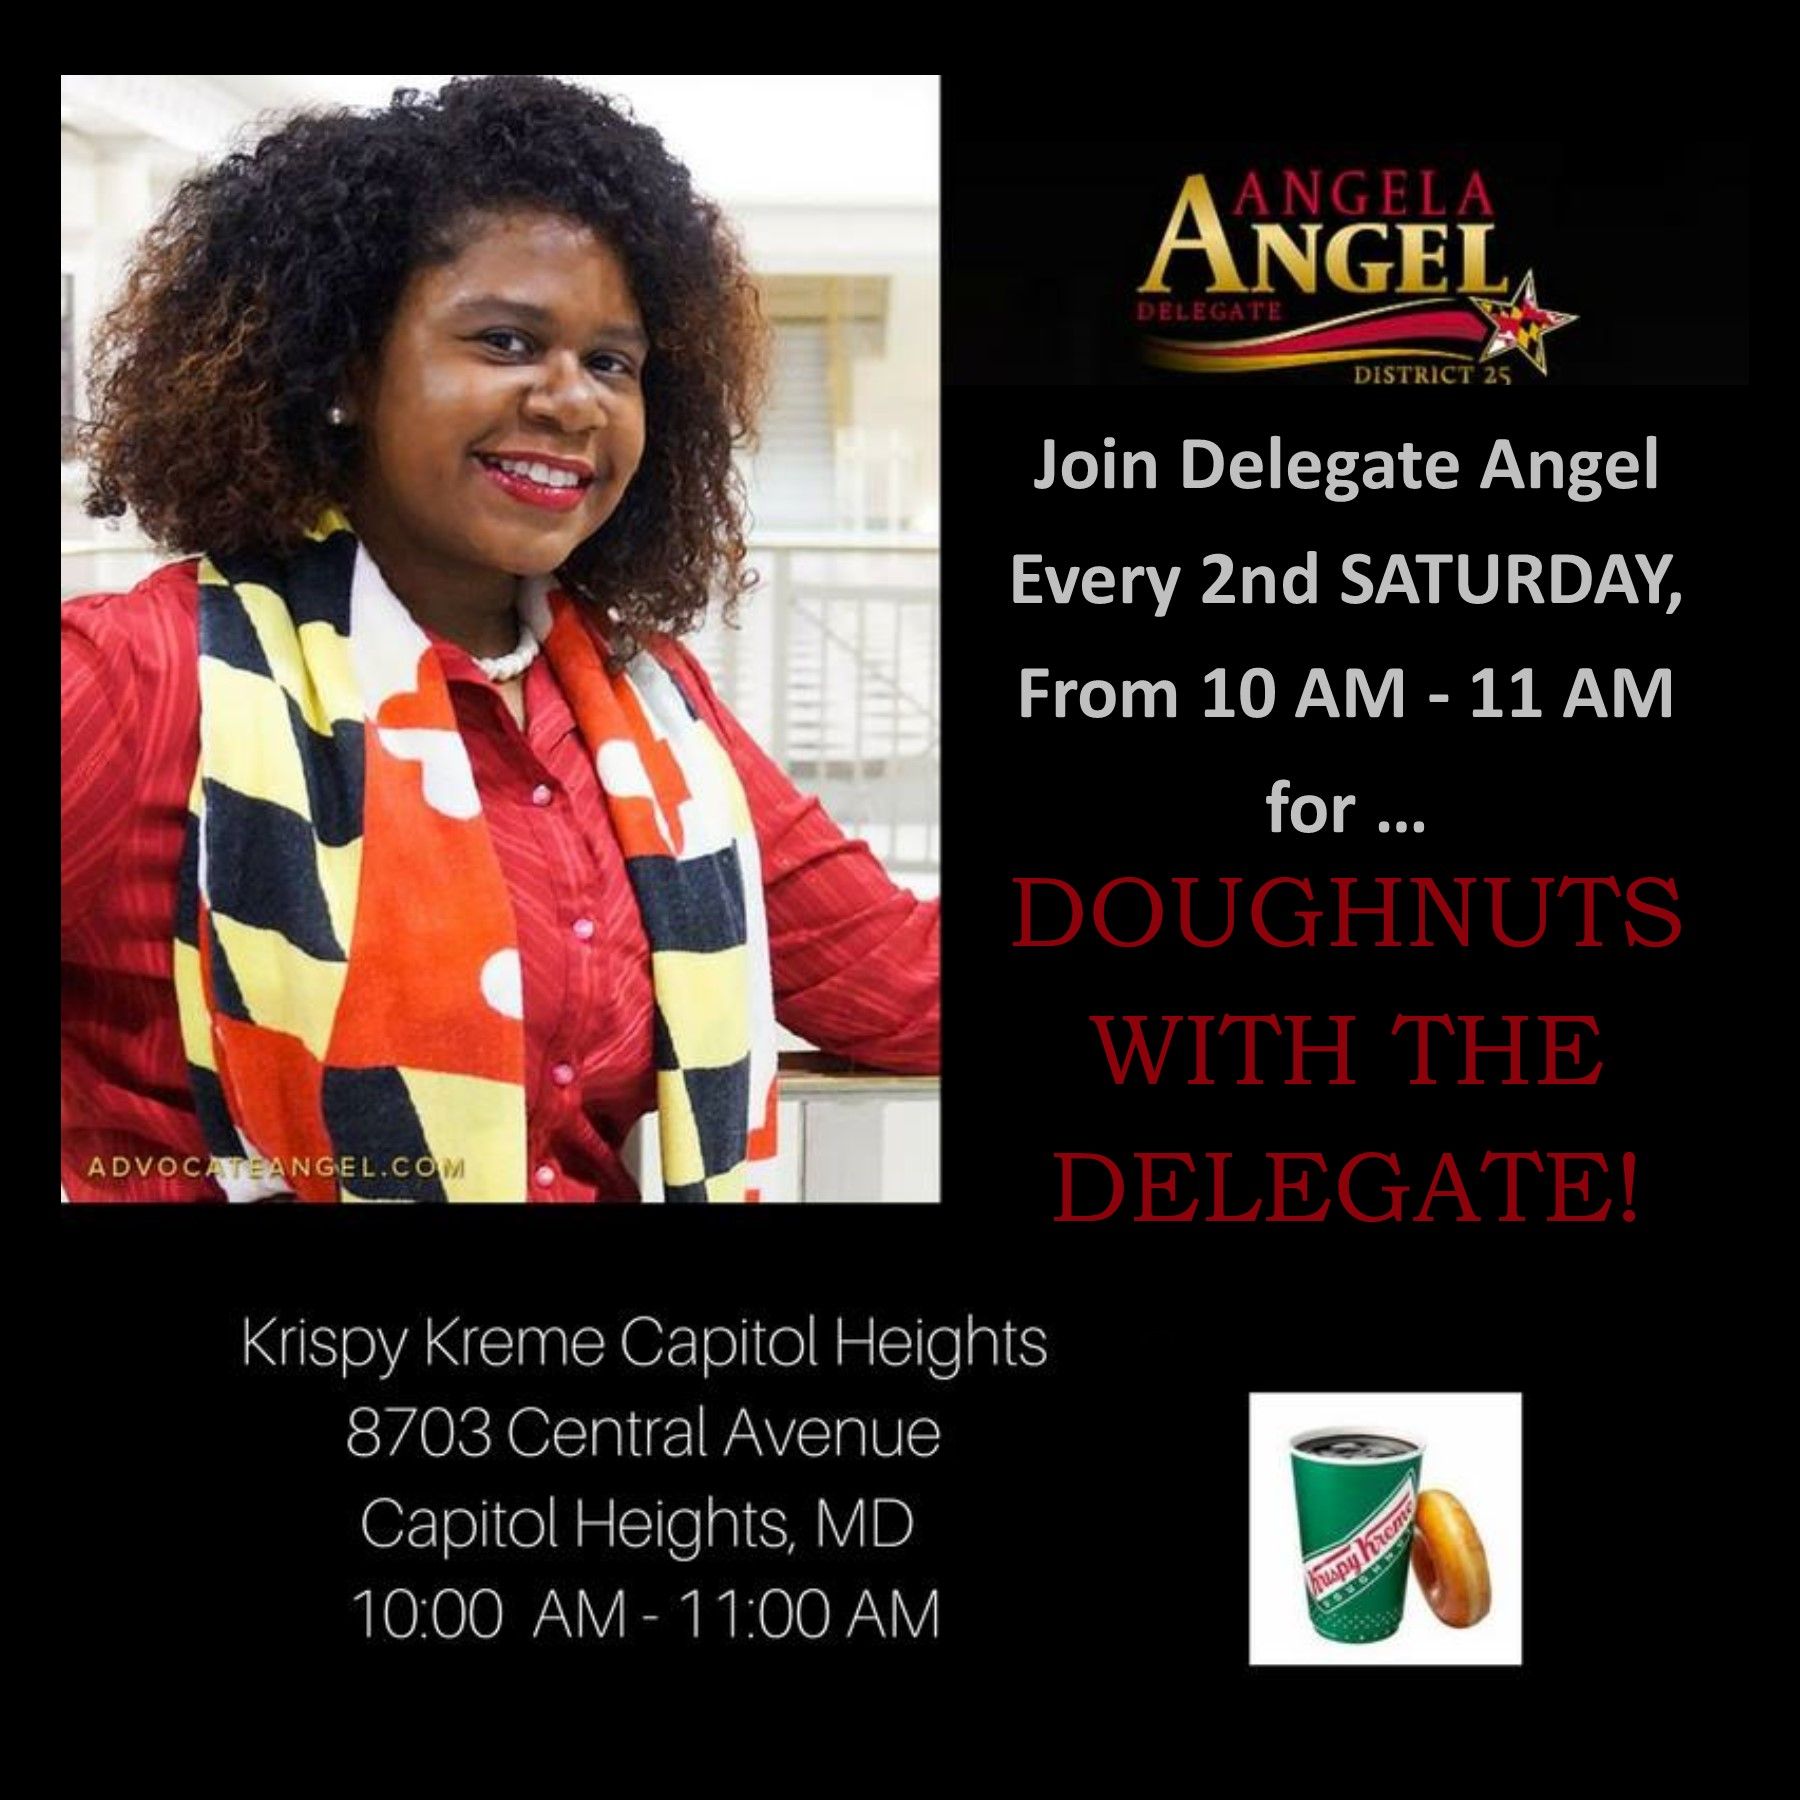 Doughnuts_with_the_Delegate_Every_Second_Saturday.jpg